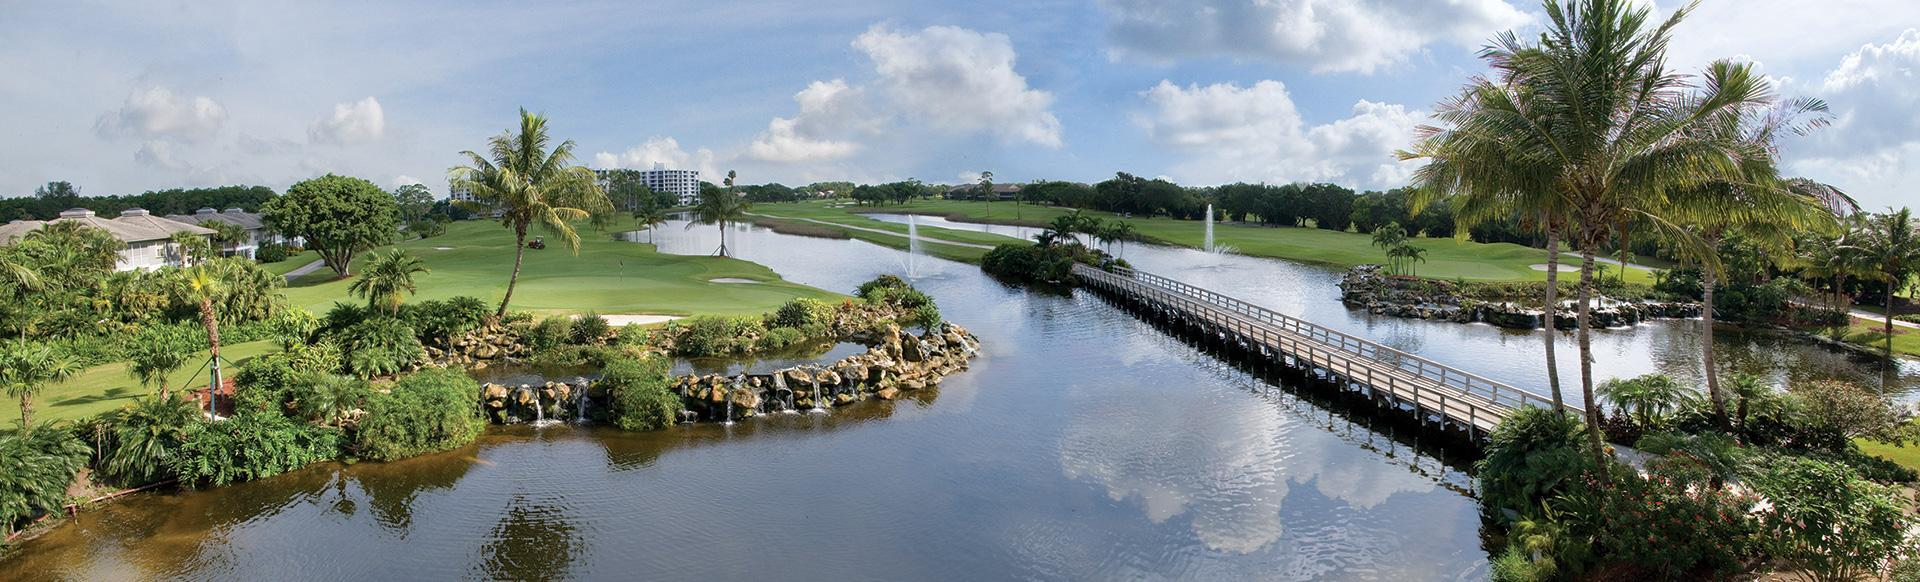 Golf Courses at Boca West Country Club in Boca Raton